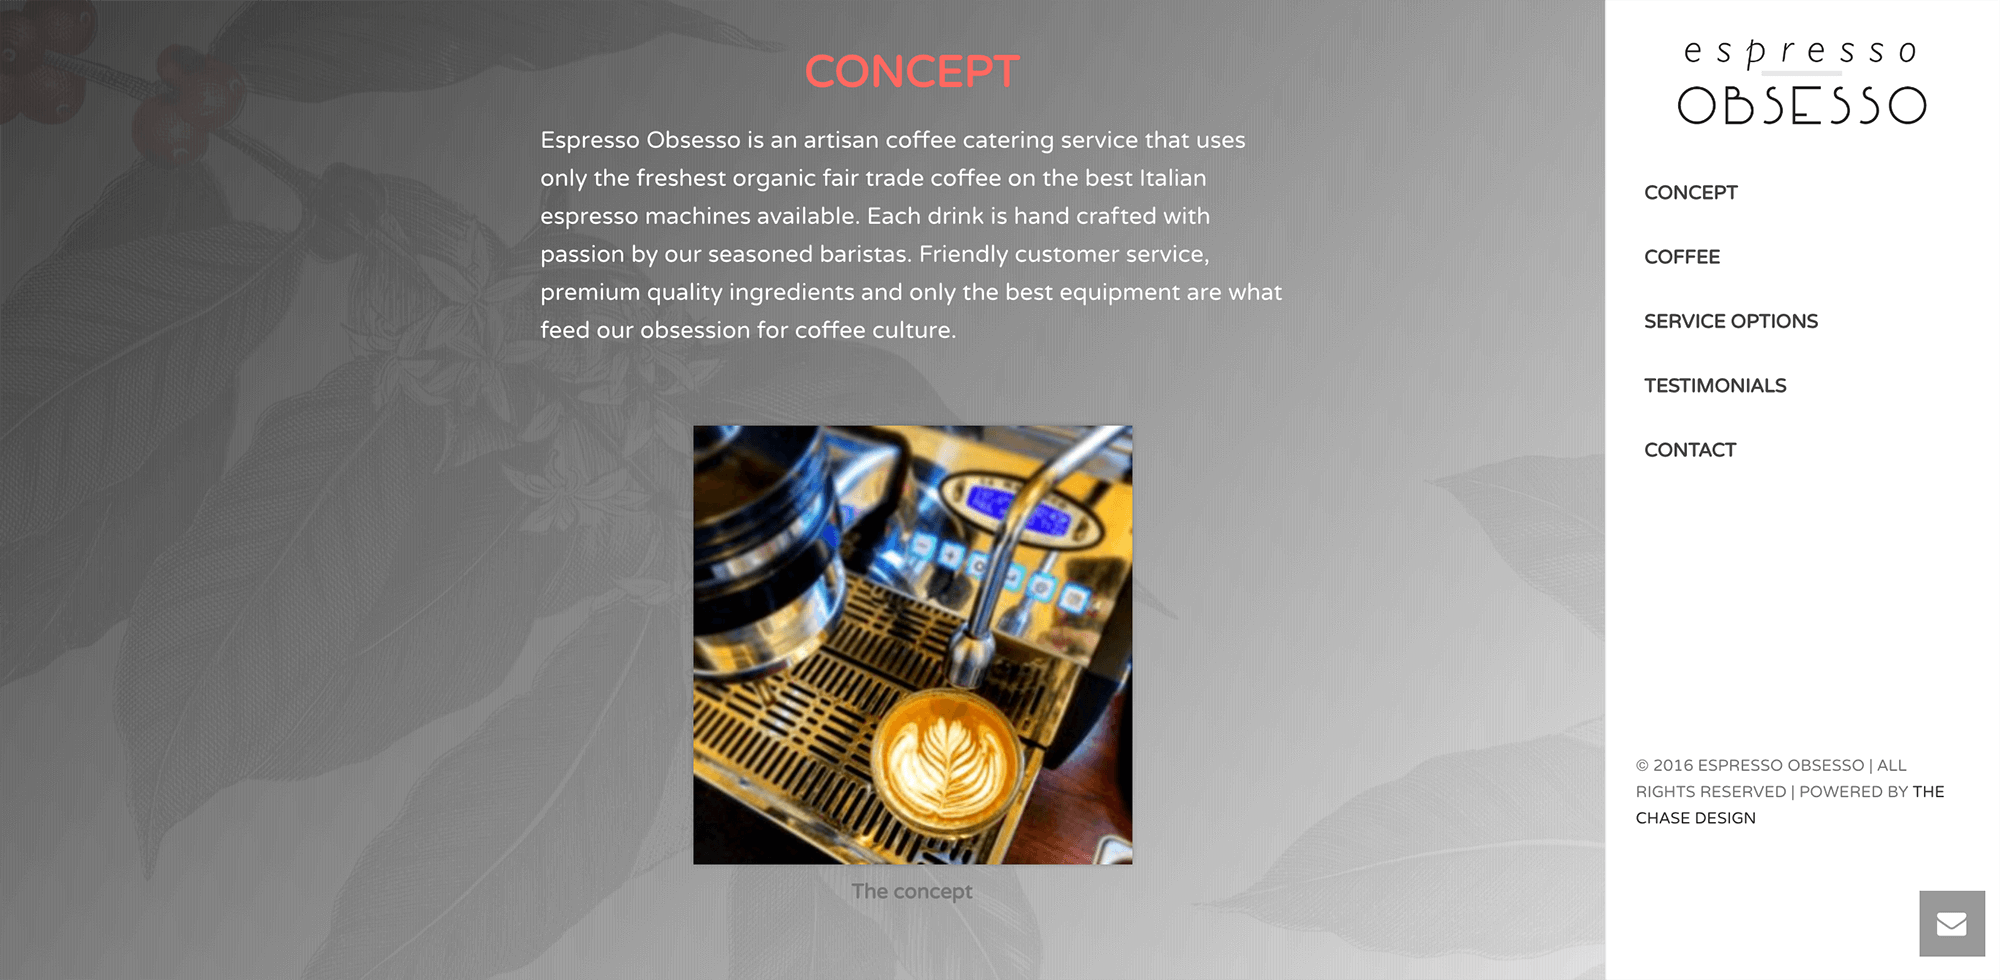 Espresso Obsesso - The Chase Design